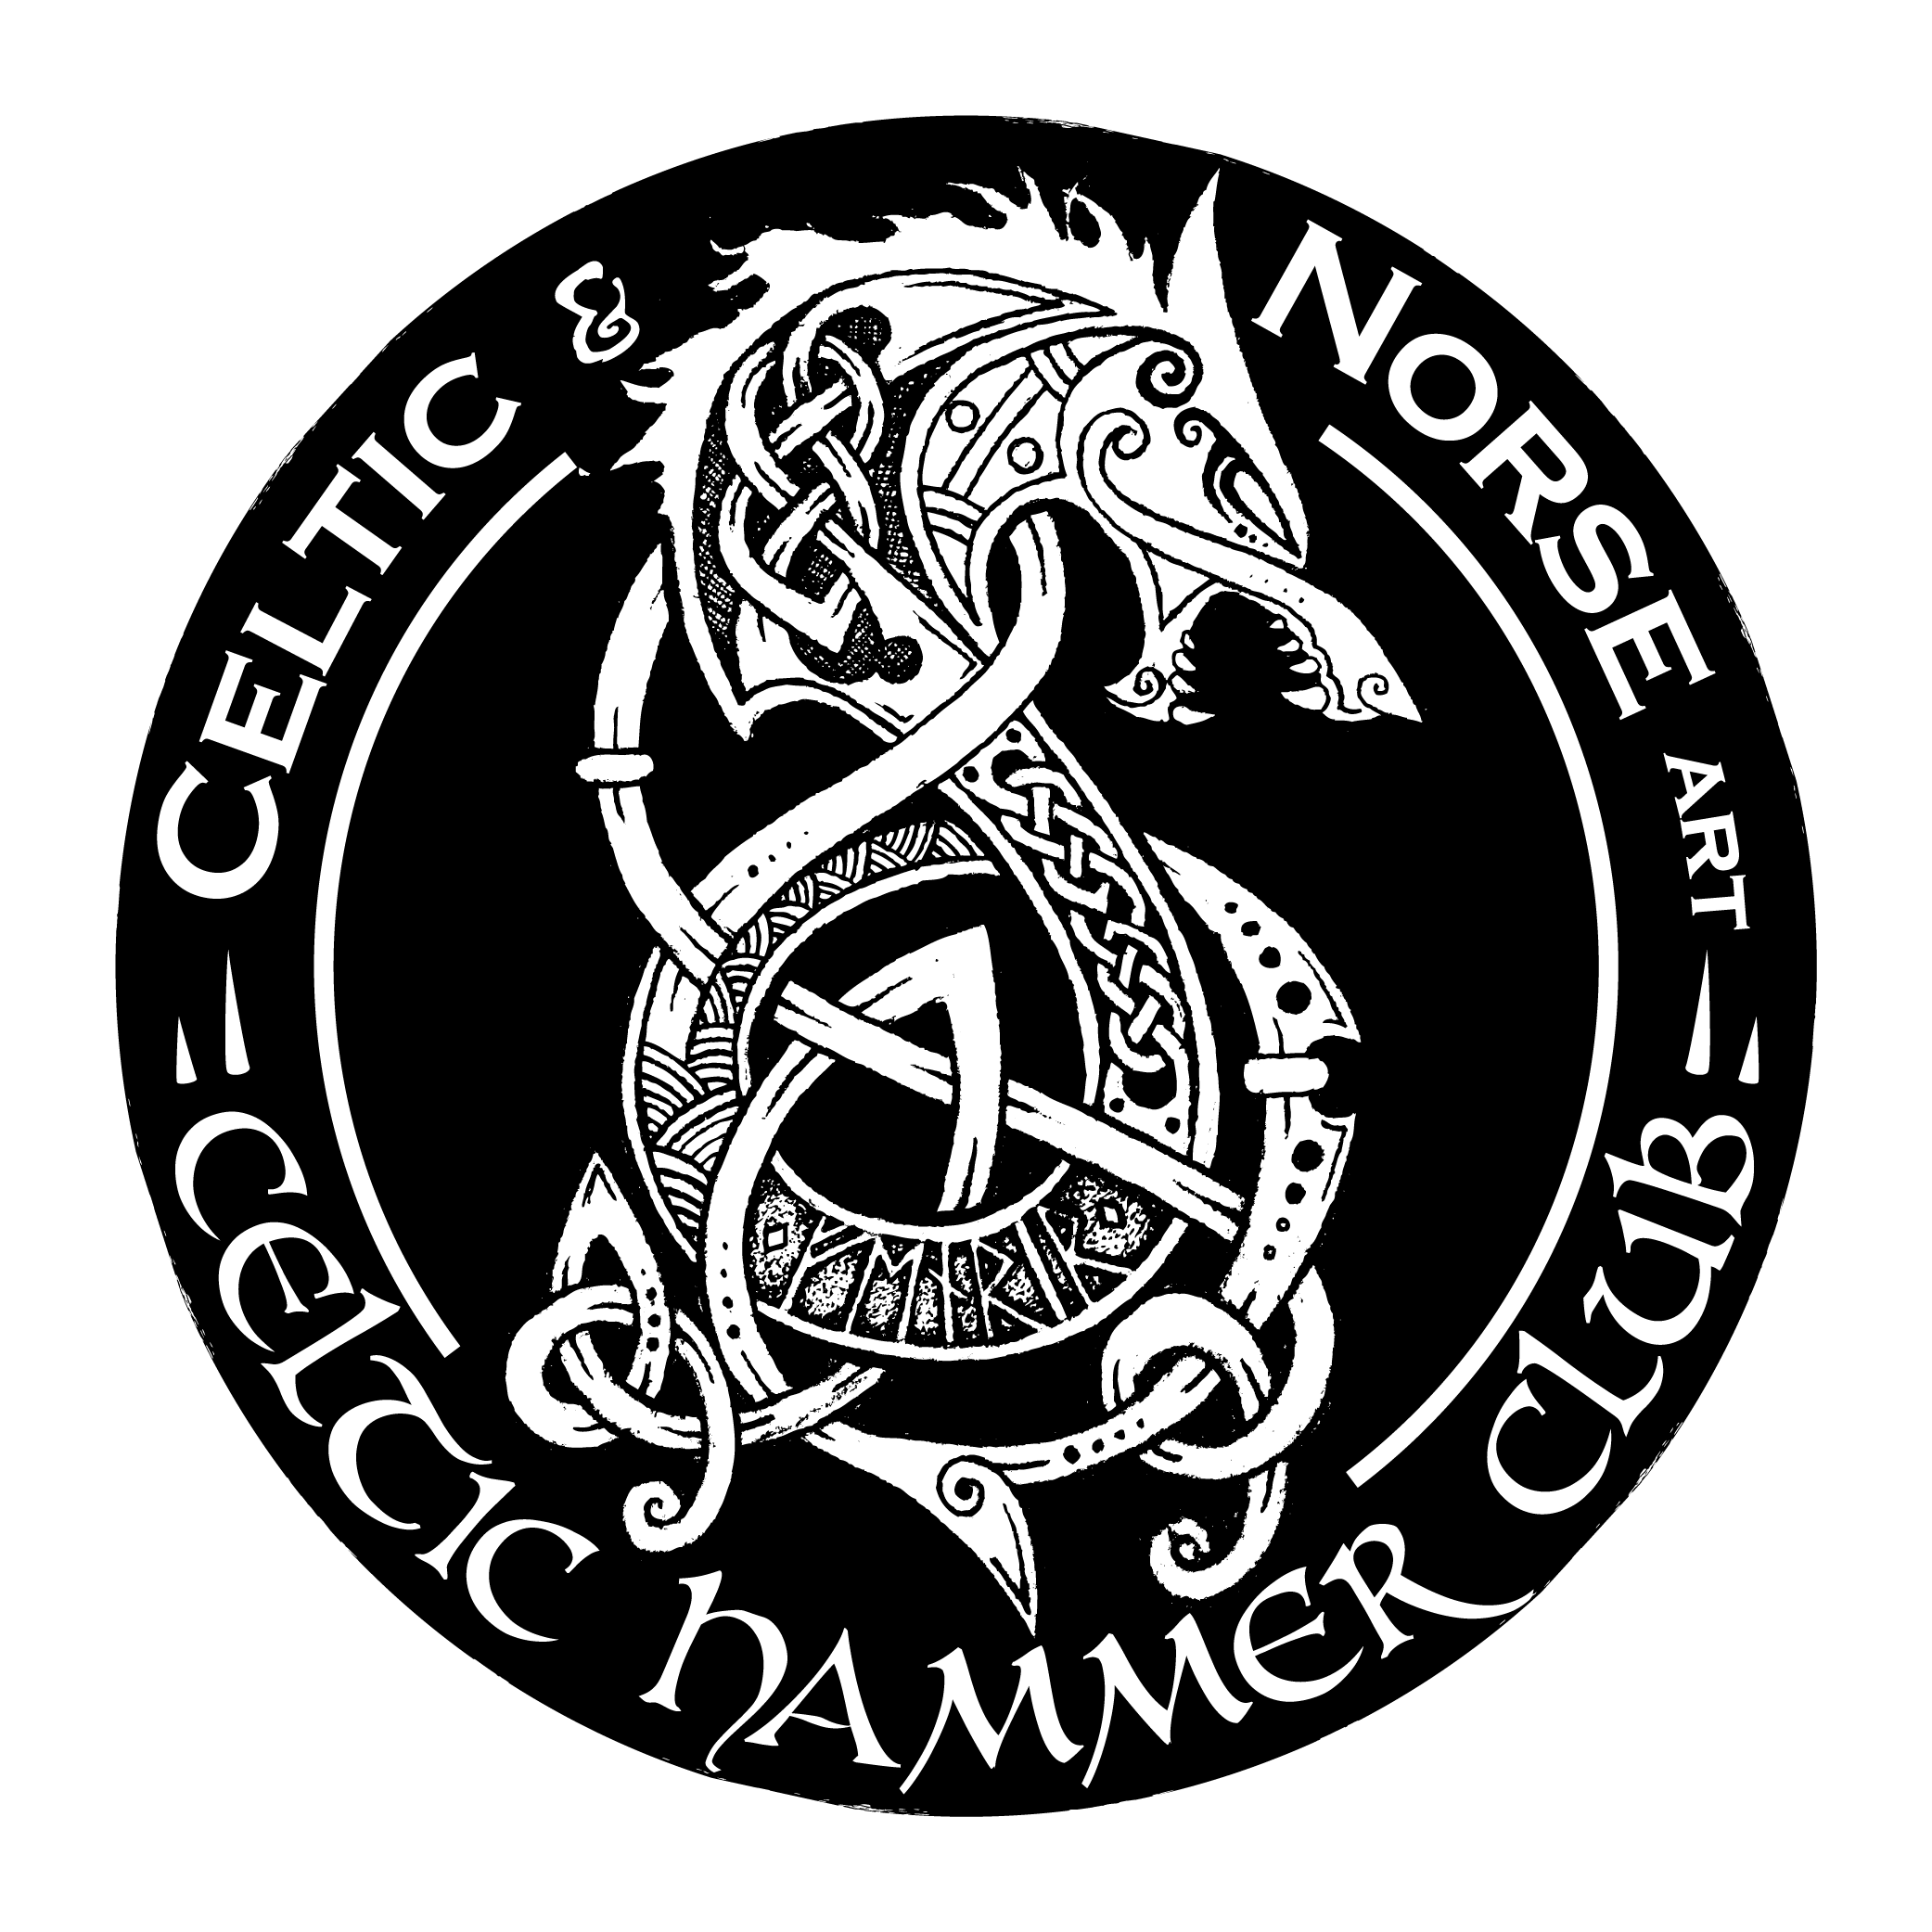 Celtic Hammer Club Logo